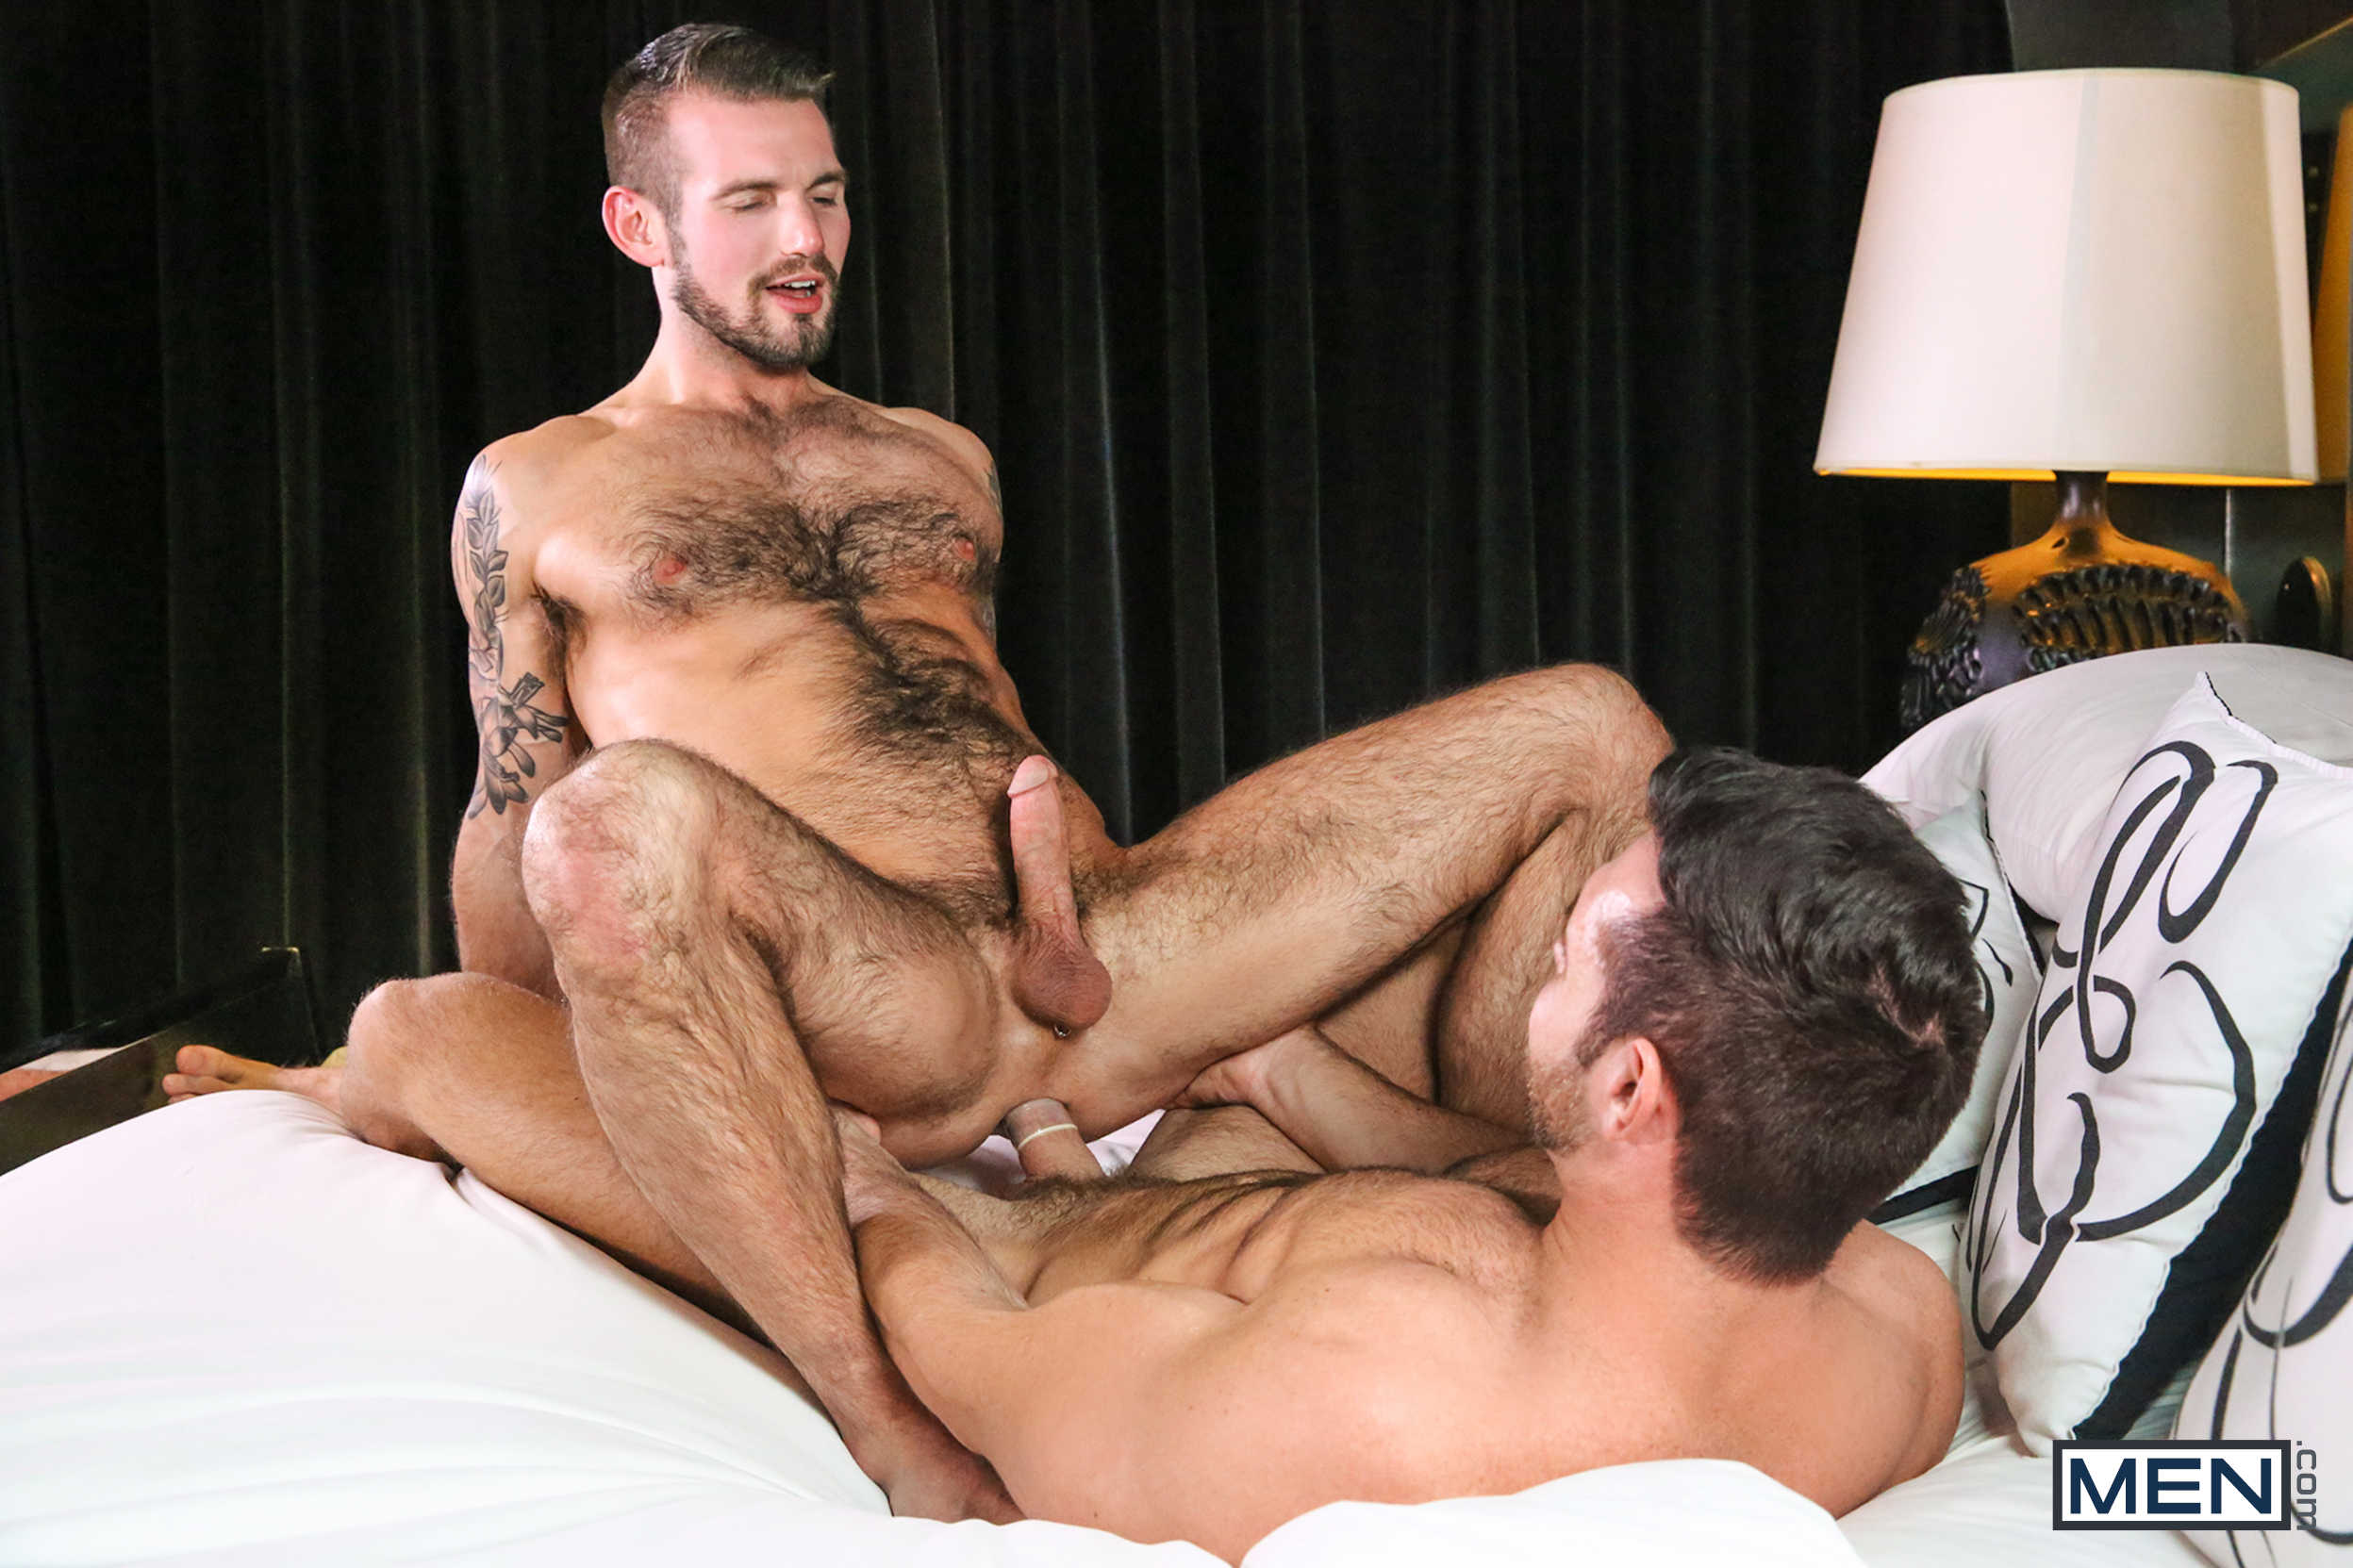 gay boys giving blowjob on each other